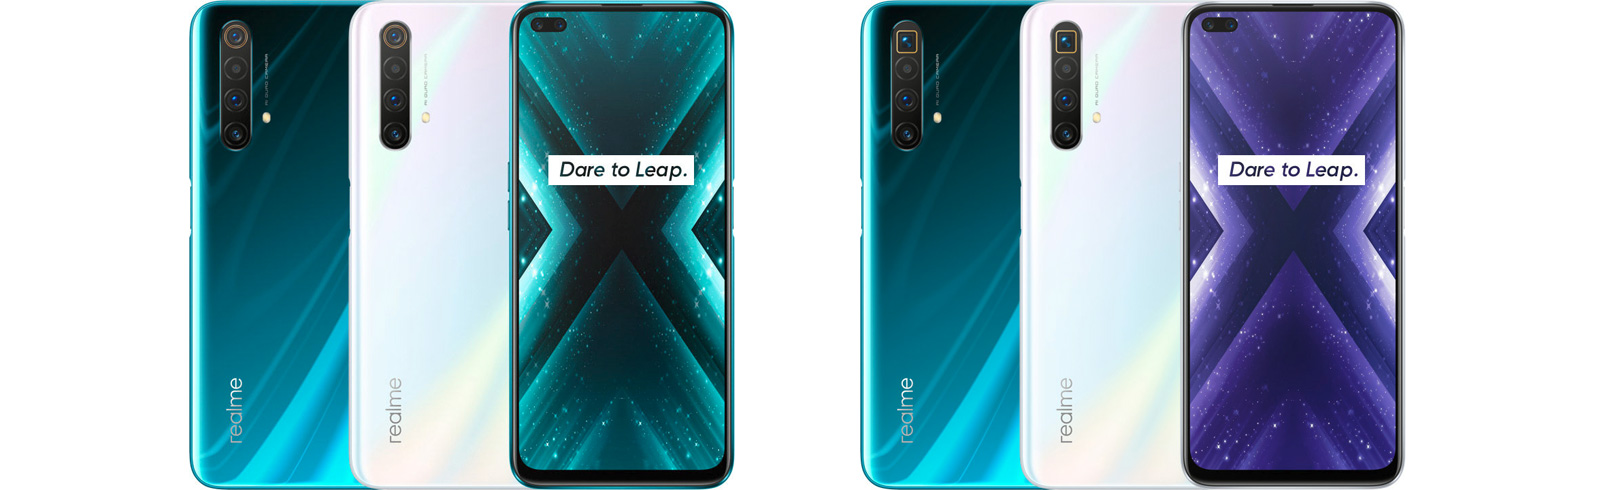 Realme X3 goes official in India, together with the Realme X3 SuperZoom